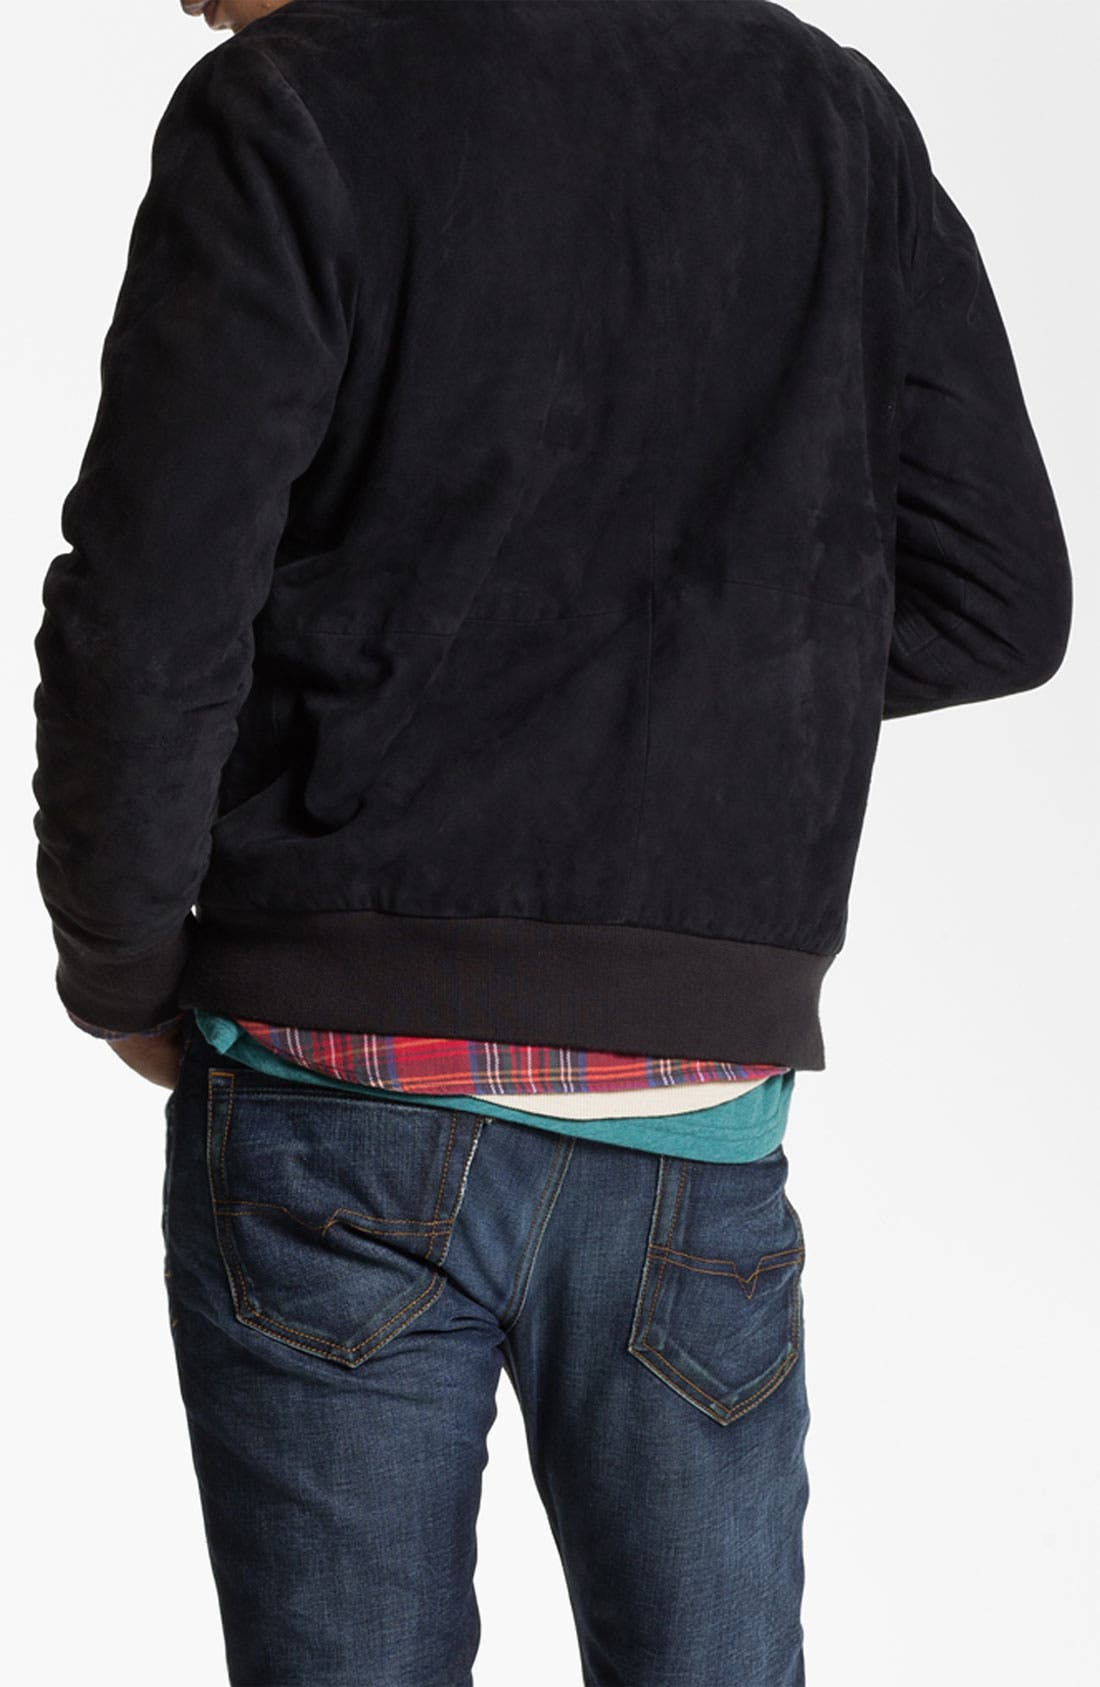 Alternate Image 2  - G-Star Raw 'Marc Newson' Suede Bomber Jacket